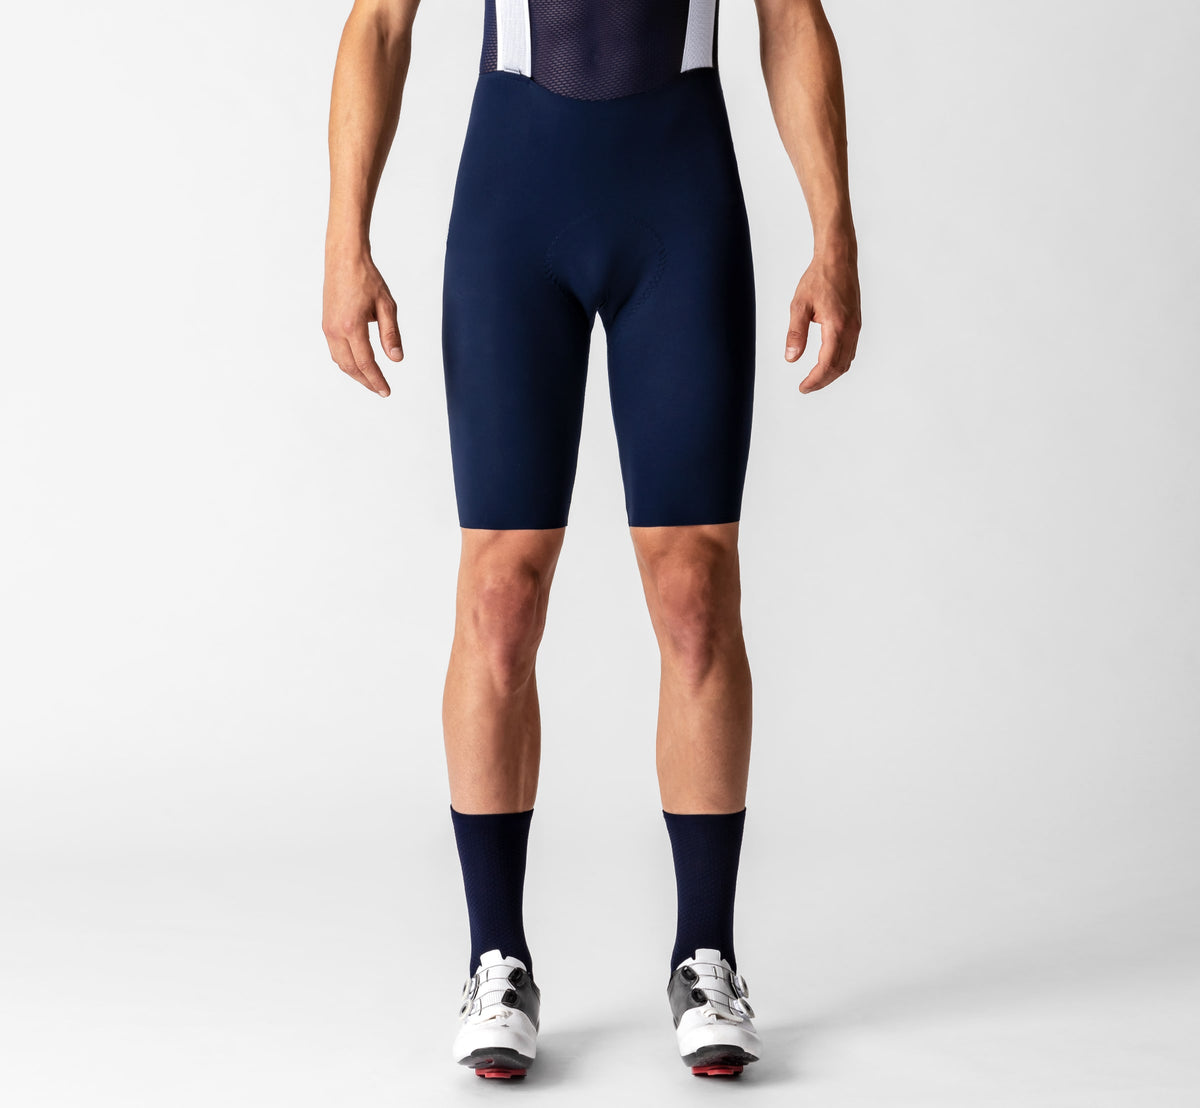 MNL Bib Shorts Blue